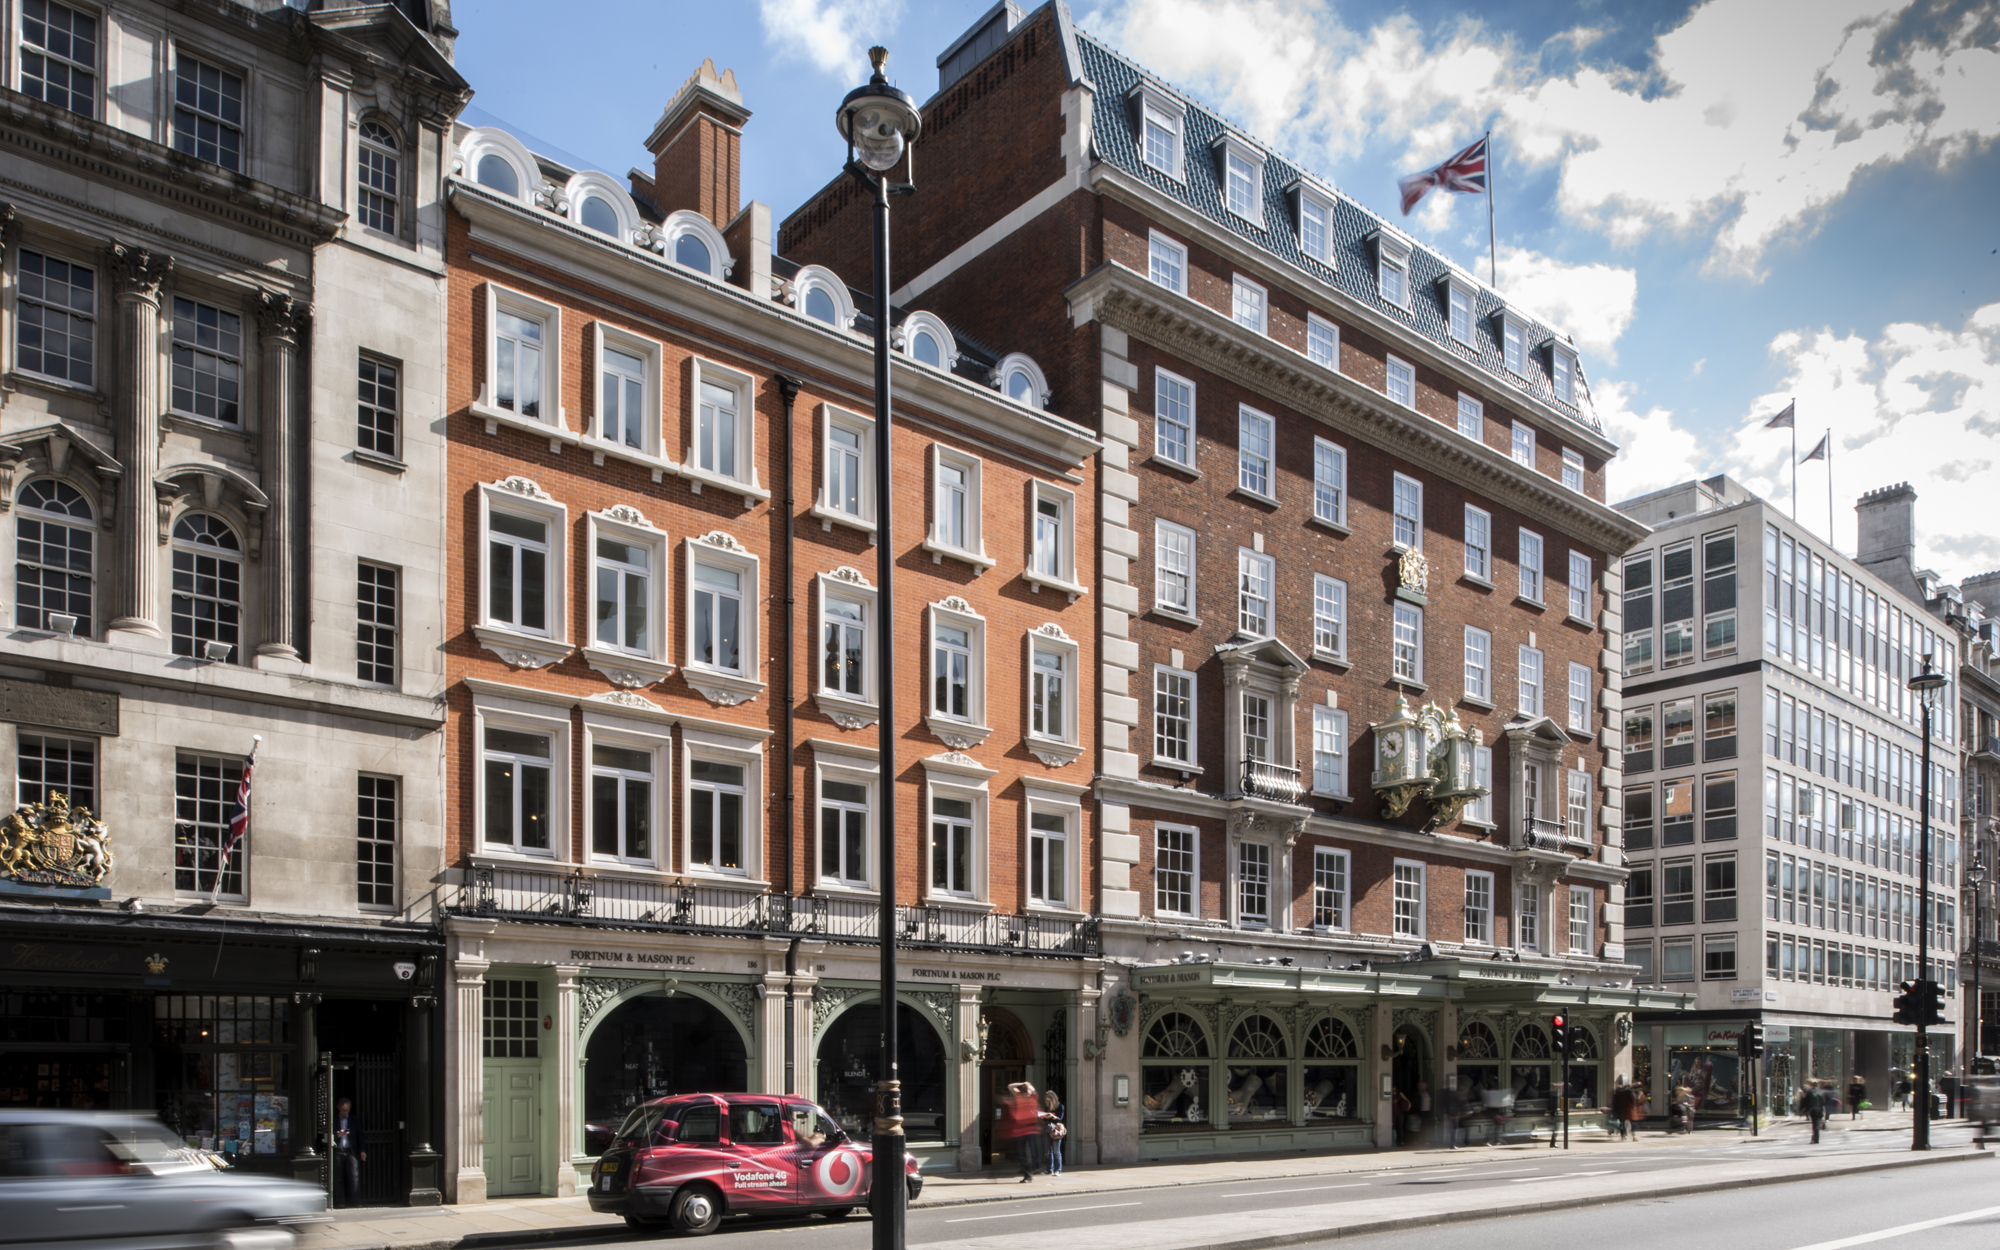 Fortnum and Mason luxury fine goods london uk venue hire private dining events building exterior west end